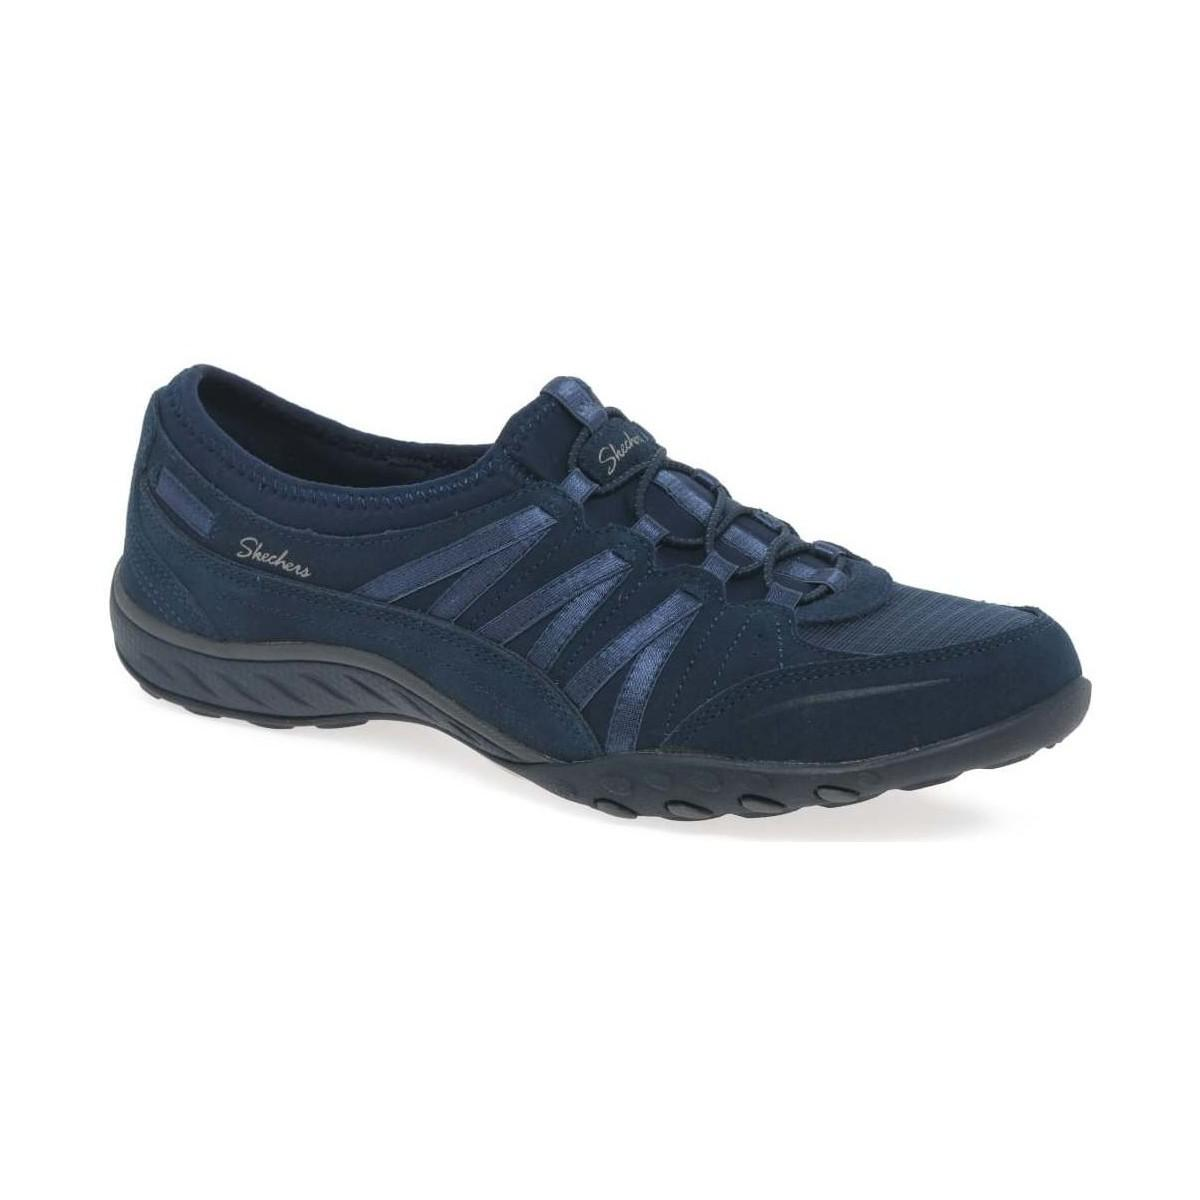 59d15a3c26d6 Skechers - Breathe Easy Money Bags Womens Casual Sports Trainers Women s  Shoes (trainers) In. View fullscreen